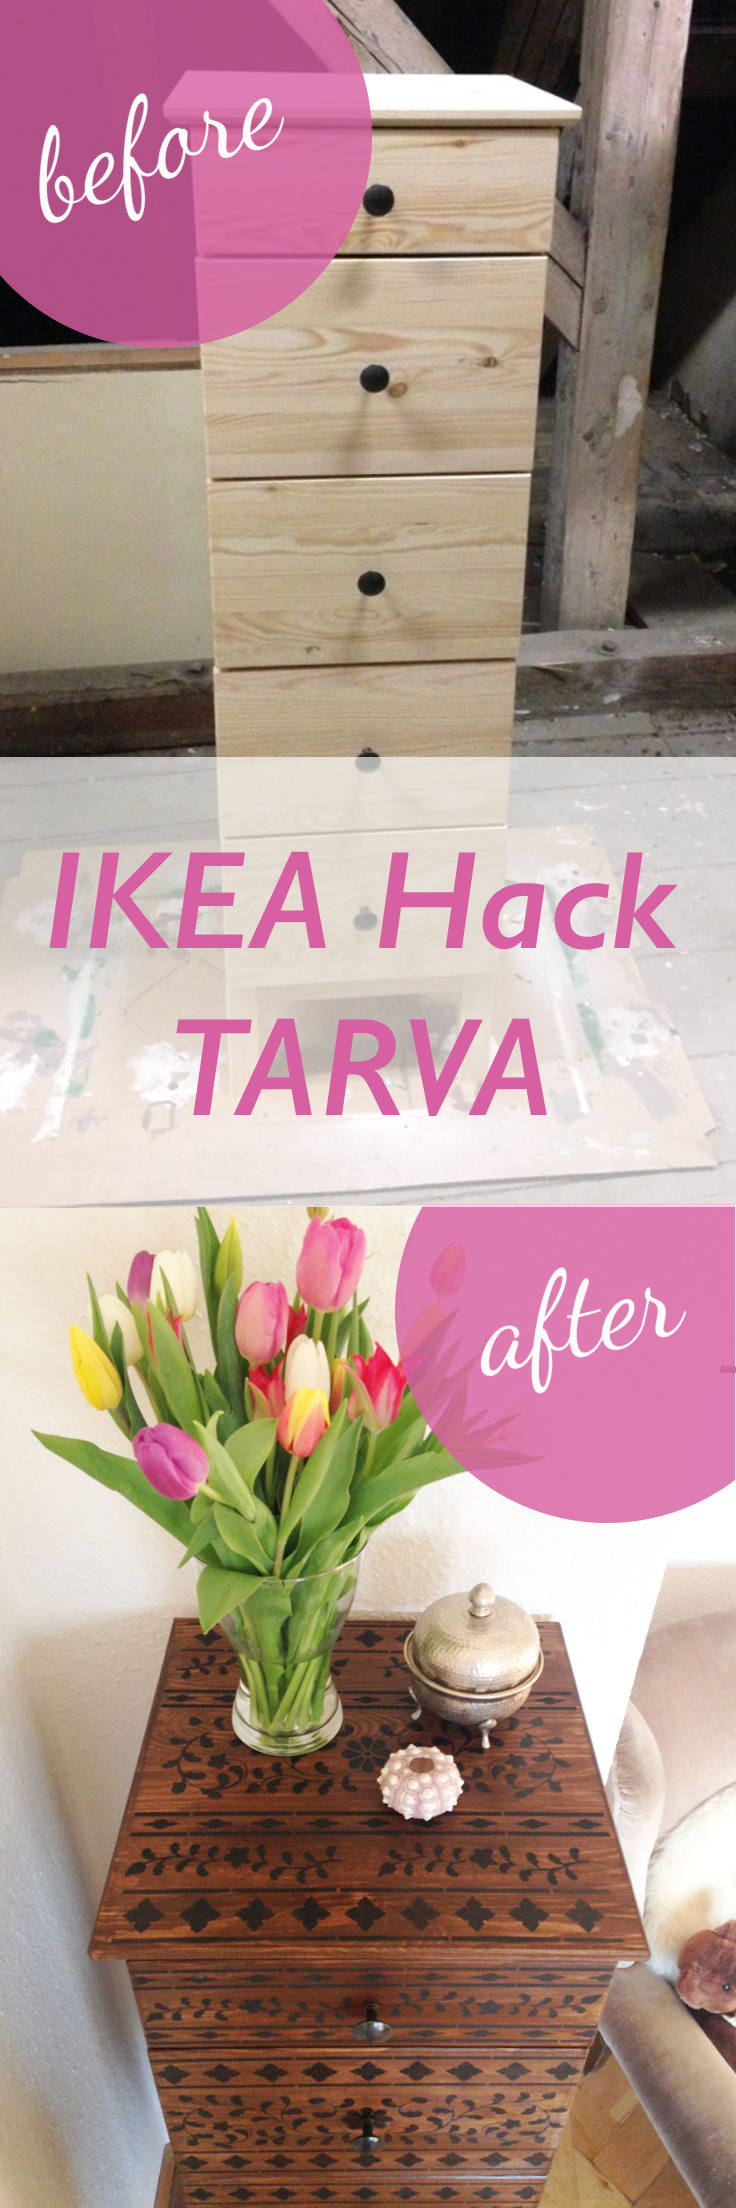 This image shows the IKEA Hack TARVA before and after image